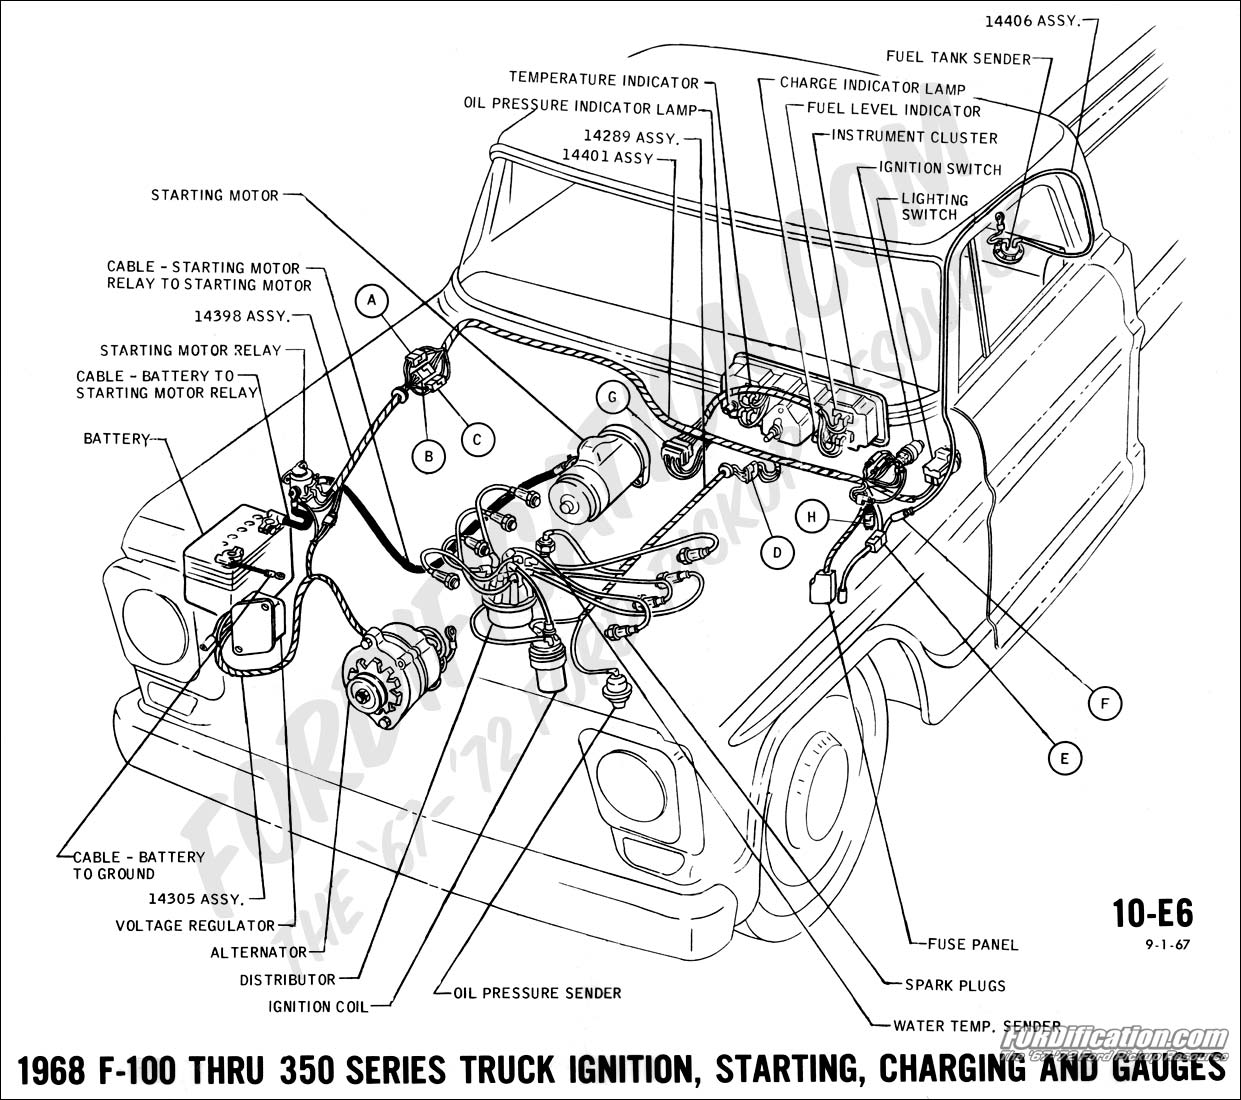 86 Chevy Headlight Switch Wiring Diagram Library 2006 F350 1968 F 100 Thru 350 Ignition Starting Charging And Gauges